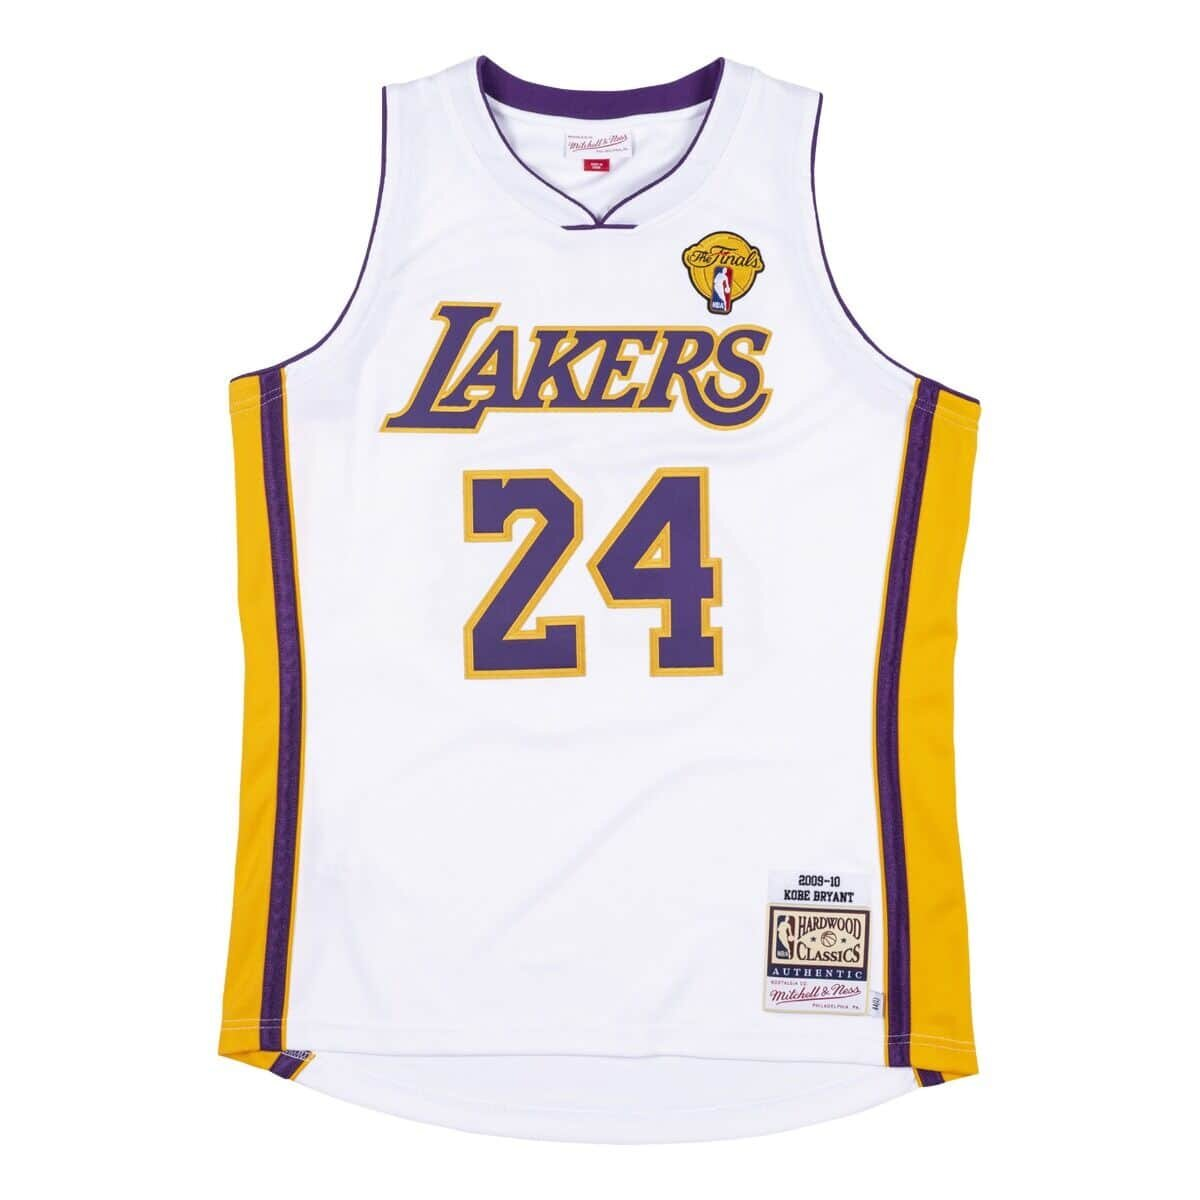 Mitchell & Ness Authentic Jersey Los Angeles Lakers 2009-10 Alternate Kobe Bryant — MAJOR